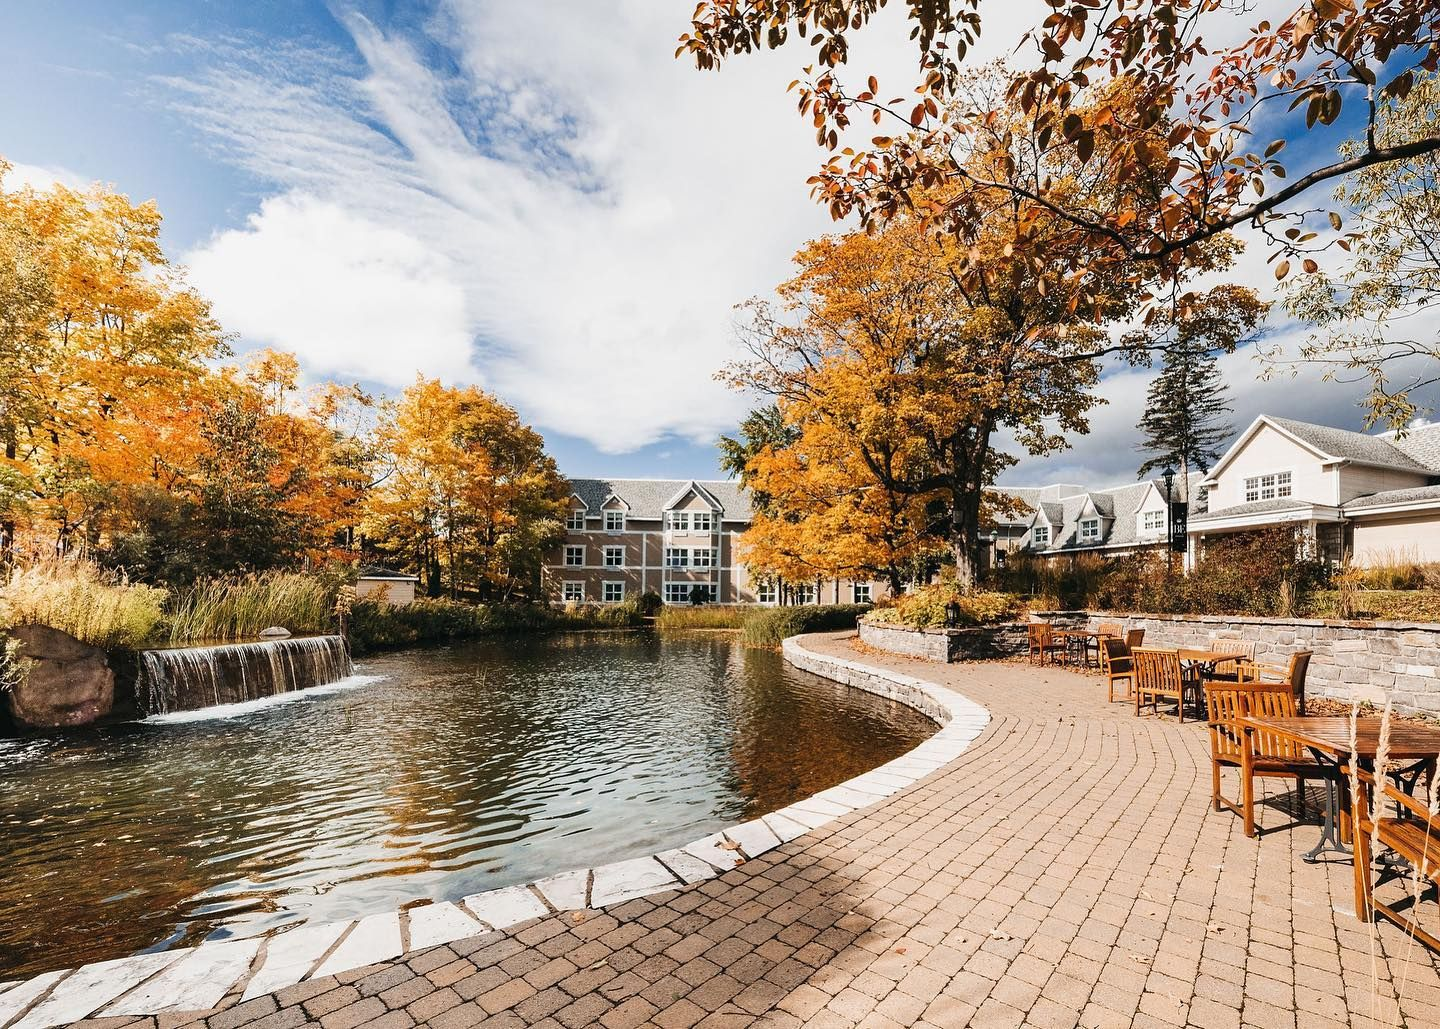 Le Bonne Entente Hotel in Quebec in the fall